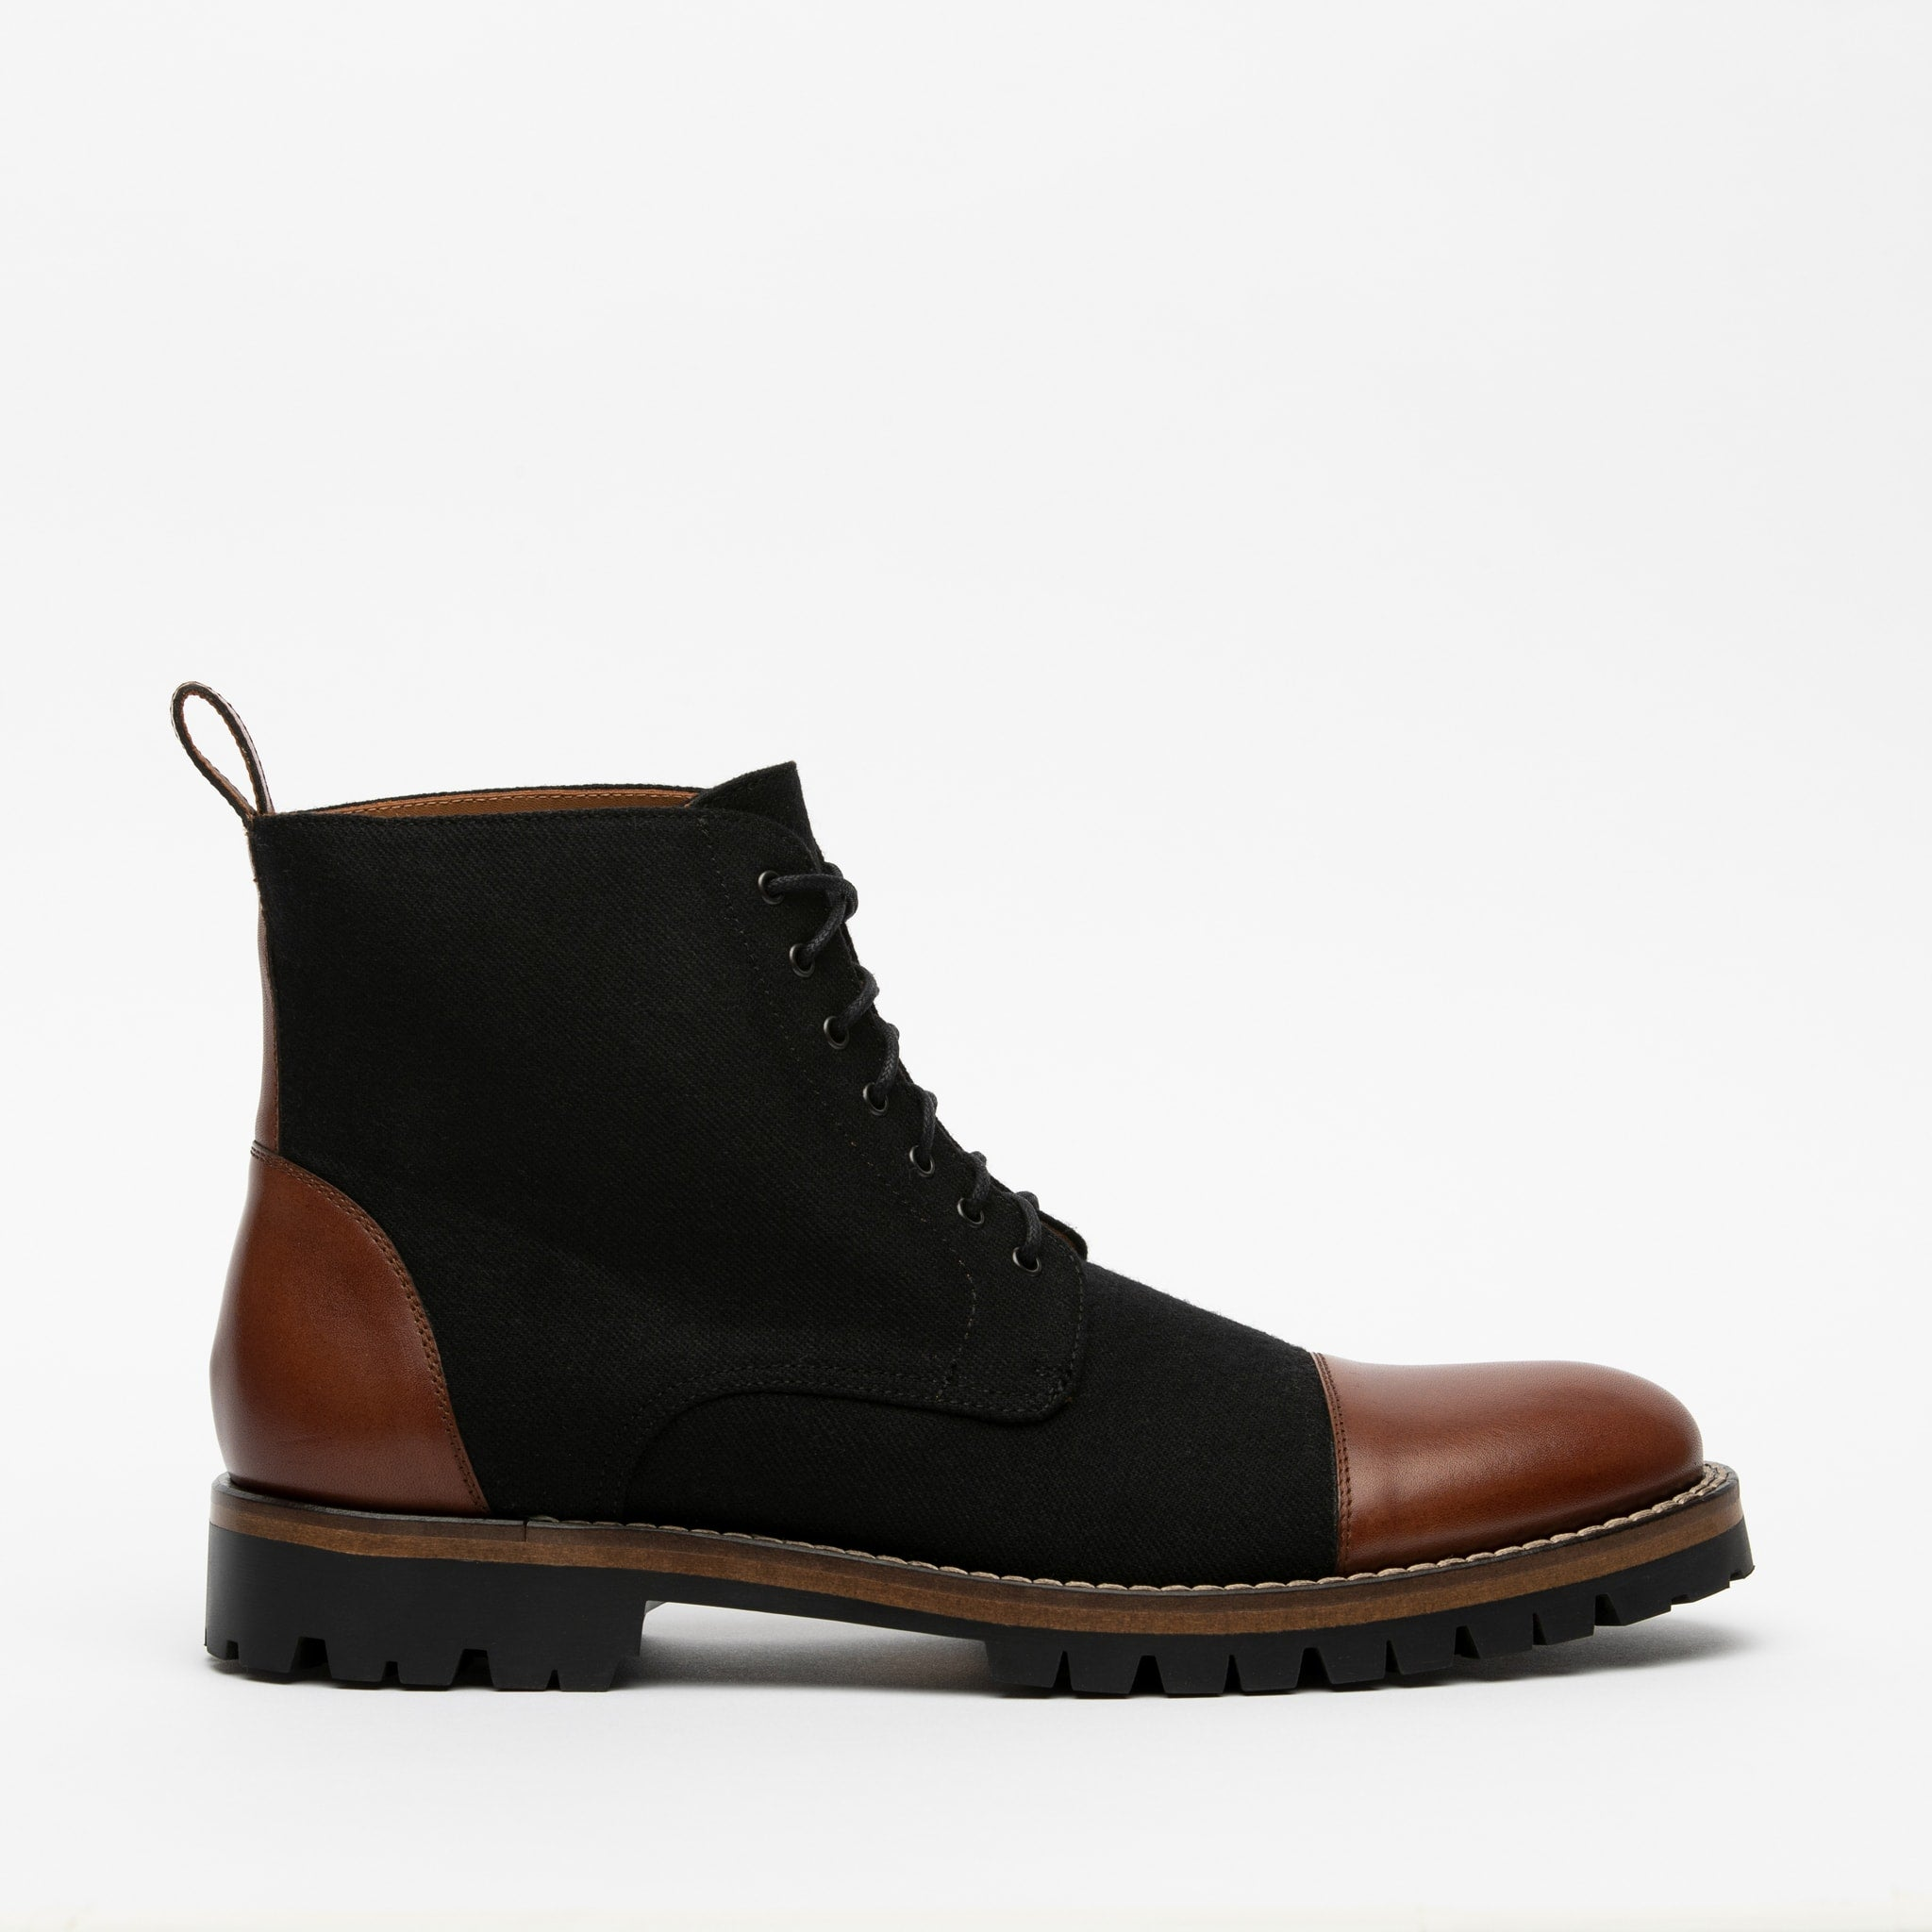 Jack Boot in Industrial side view